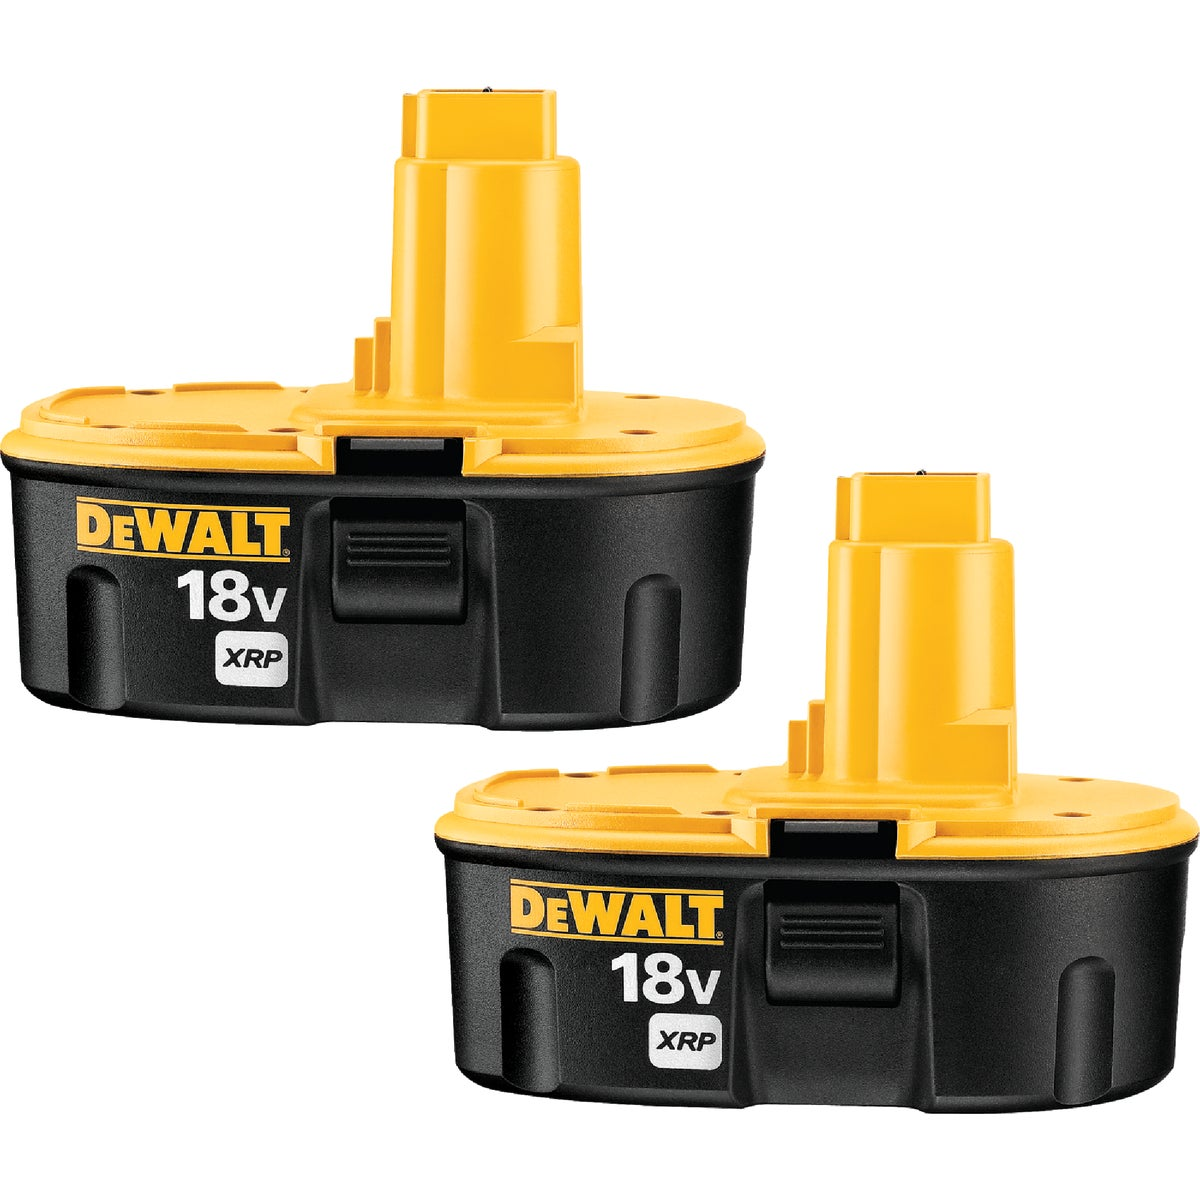 2PK 18V XRP BATTERY - DC9096-2 by DeWalt